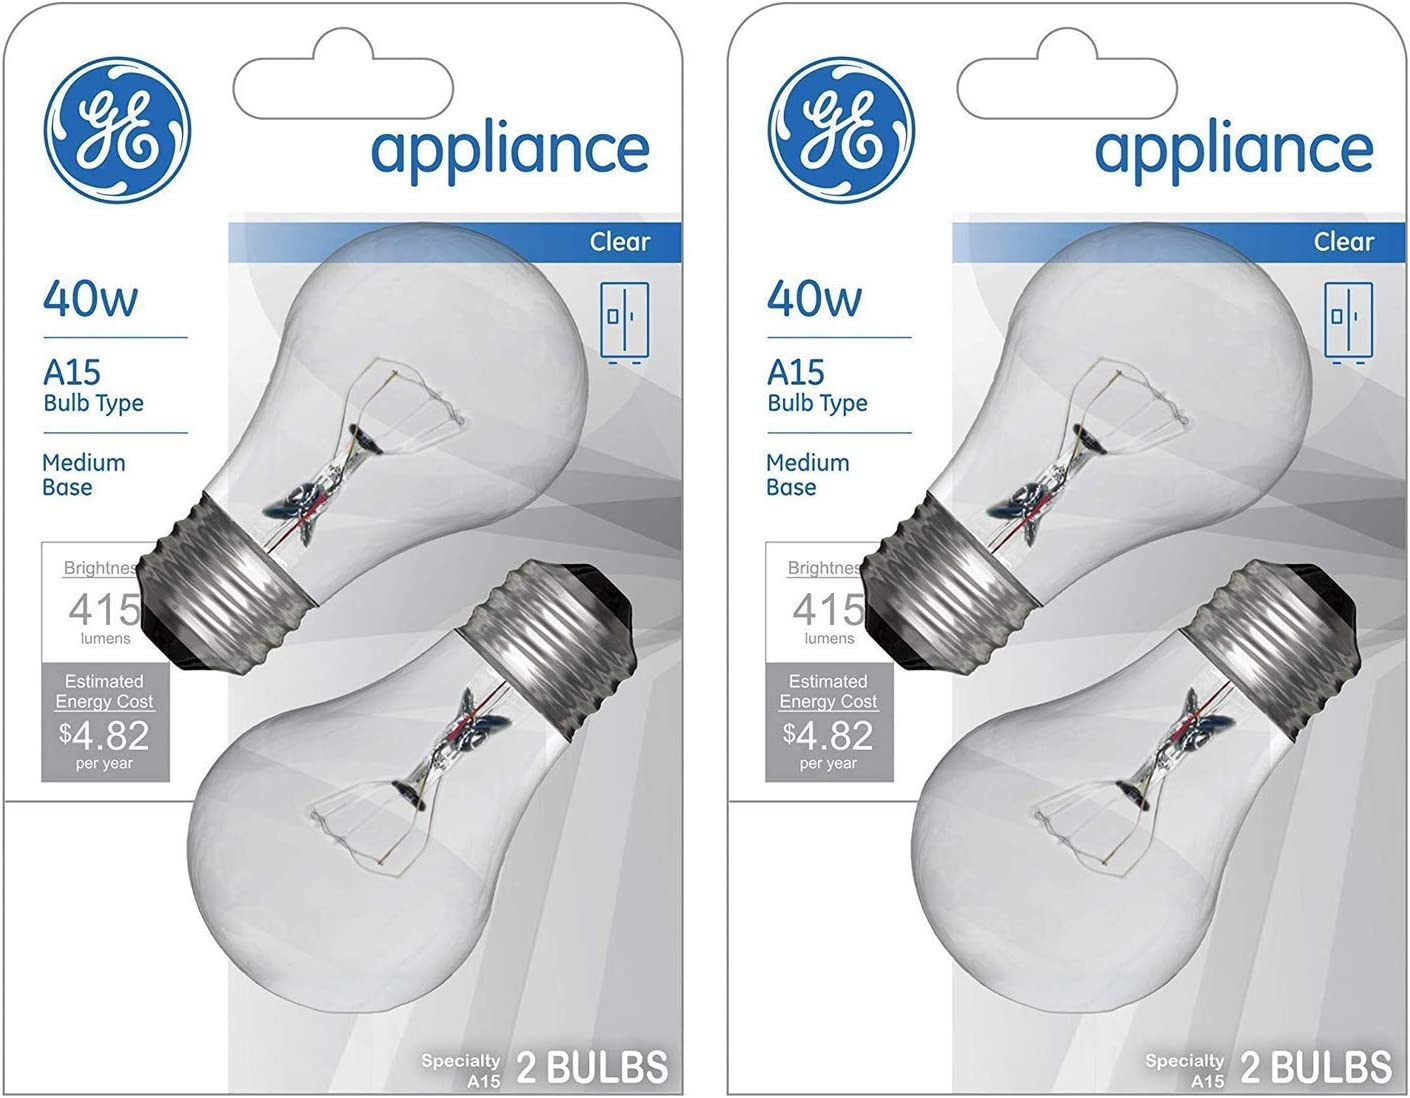 Medium Base 415 Lumens 2-Pack A15 Bulb Type GE Appliance Clear Light Bulb 40w 2-Count per Pack